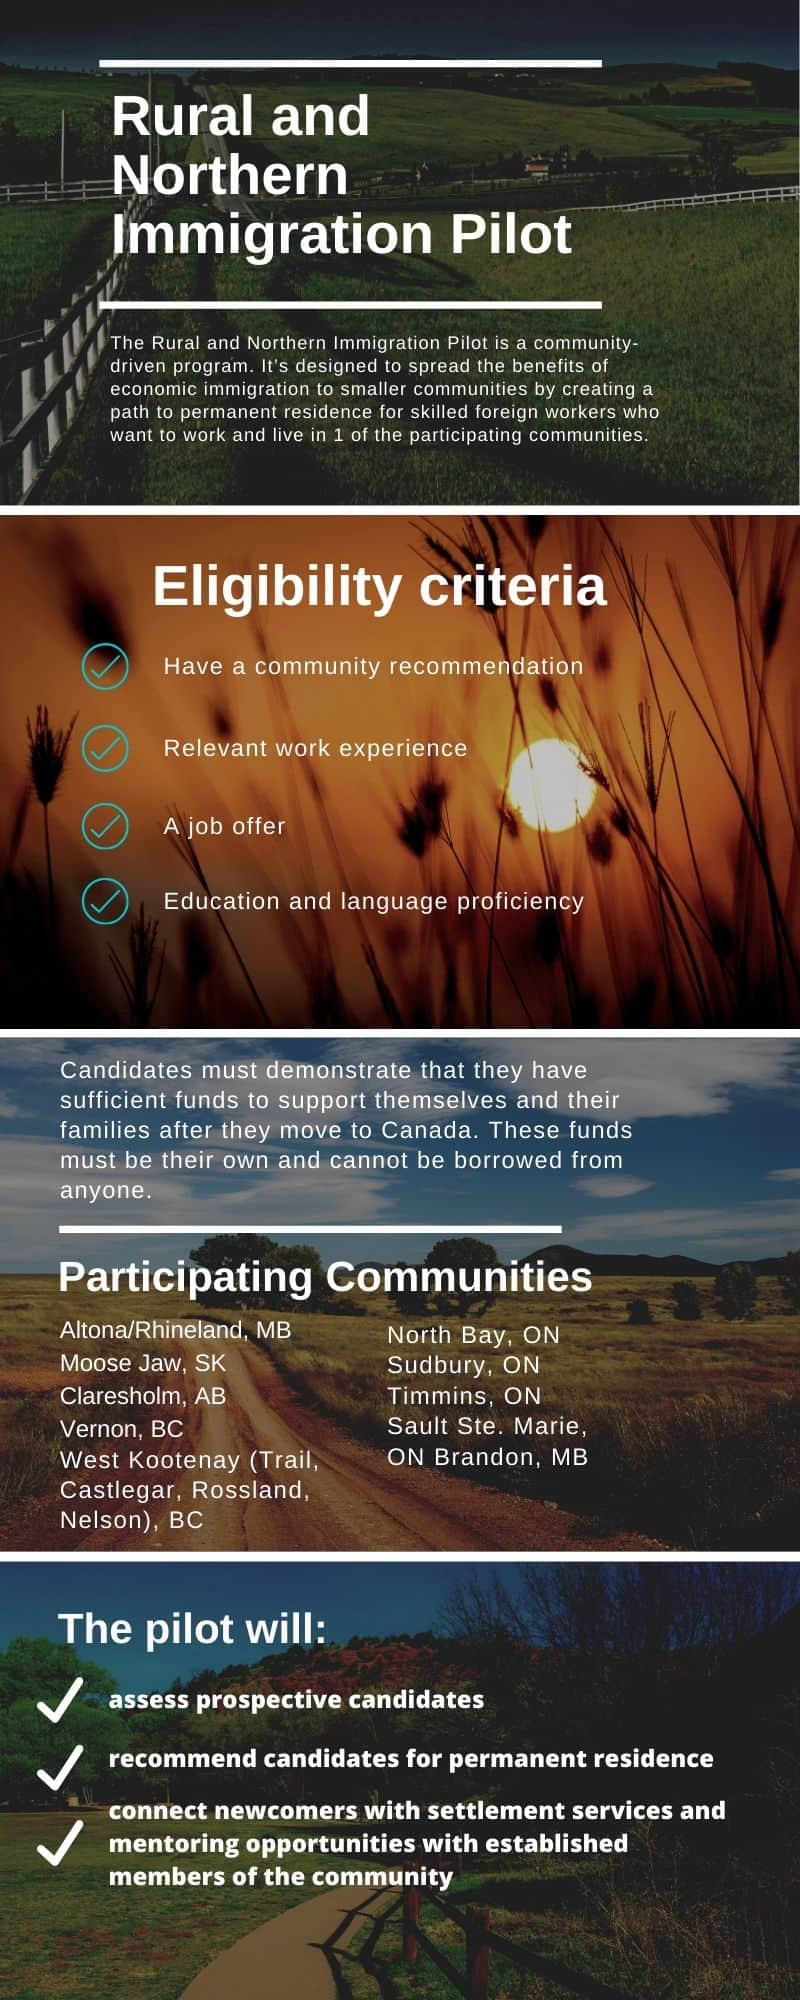 Rural and Northern Immigration Pilot update Applications starts